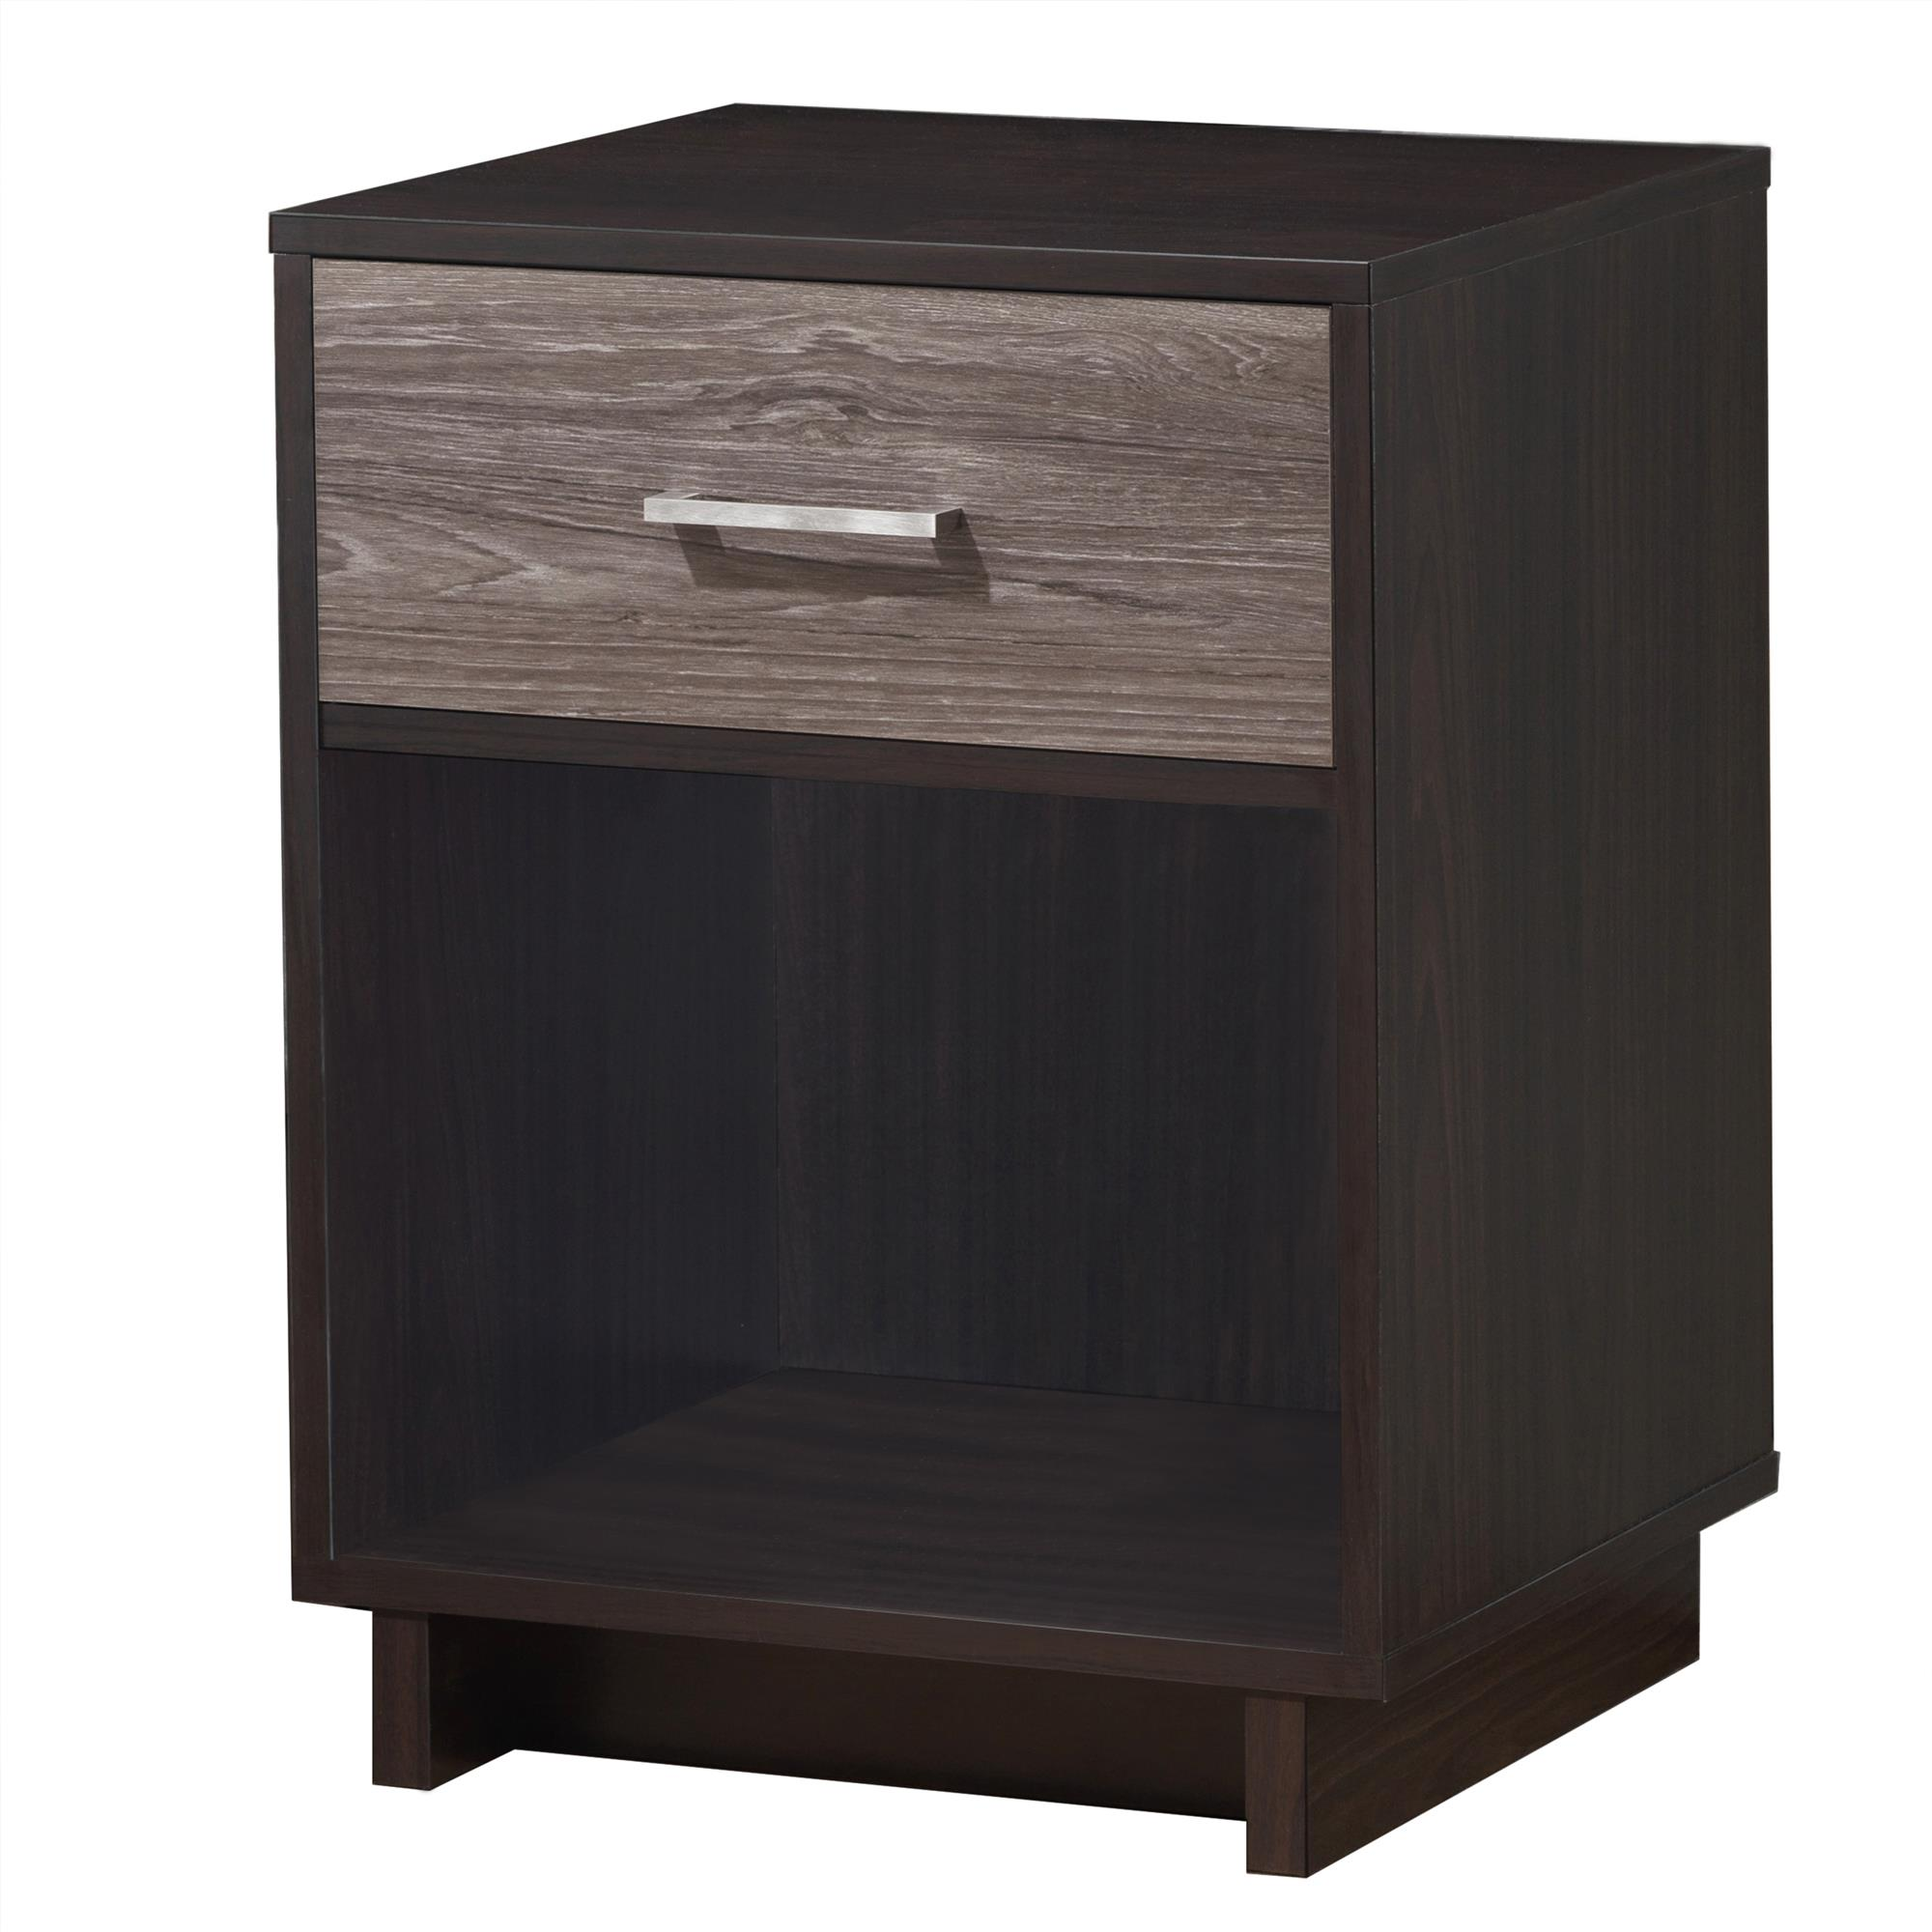 Ameriwood Home Colebrook Nightstand, Multiple Colors by Ameriwood Home